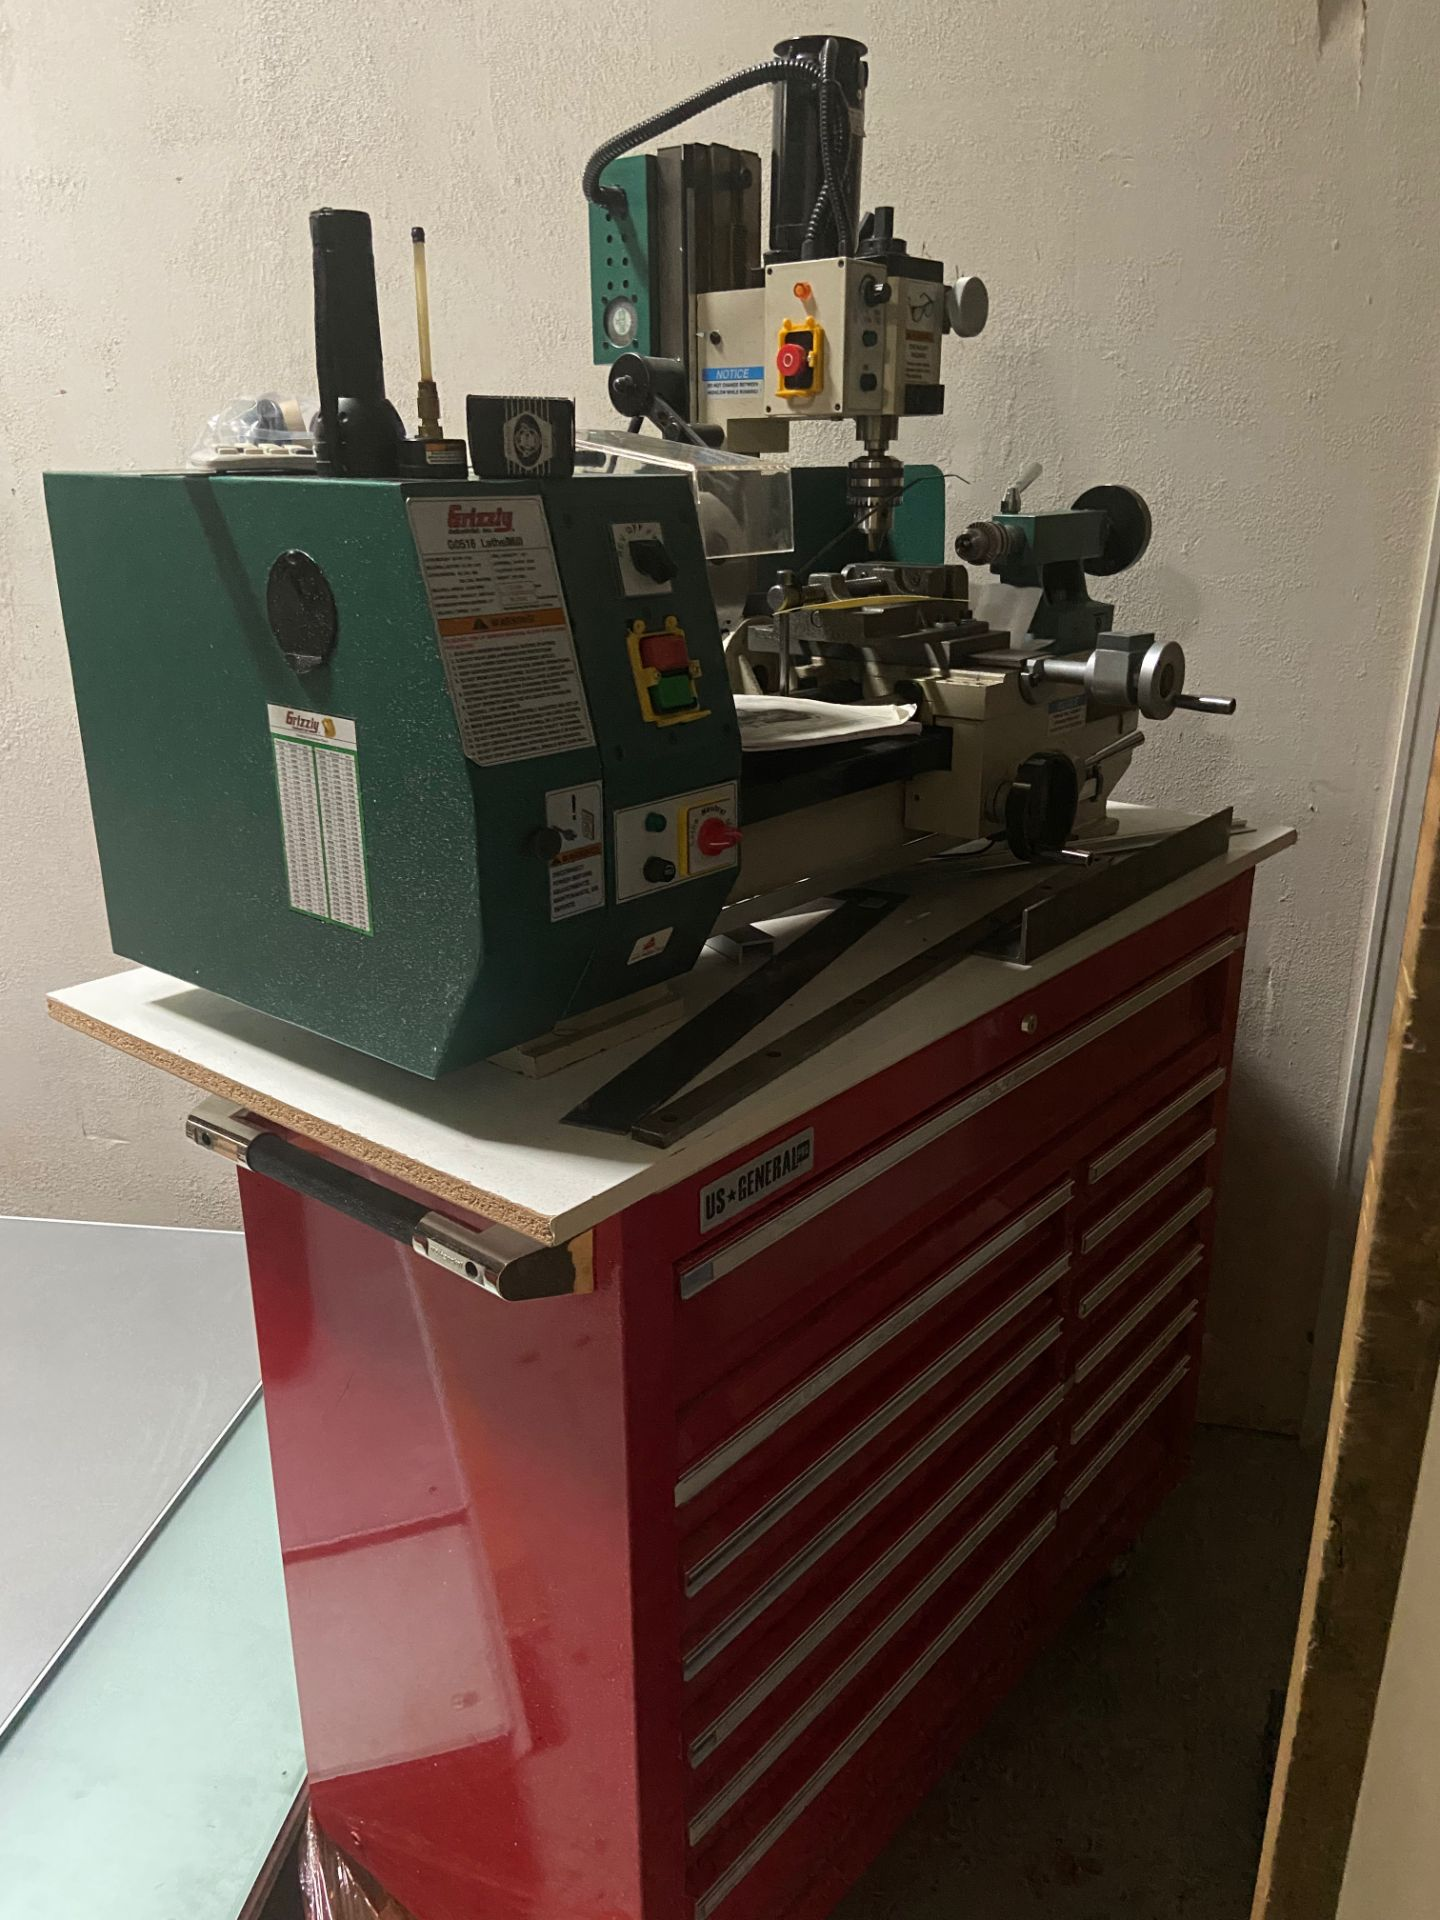 Grizzly Industrial Lathe/Mill, Model# G0516, Serial# MO120045, Lathe Motor 3/4 hp, 110V, 150-2400 - Image 5 of 12